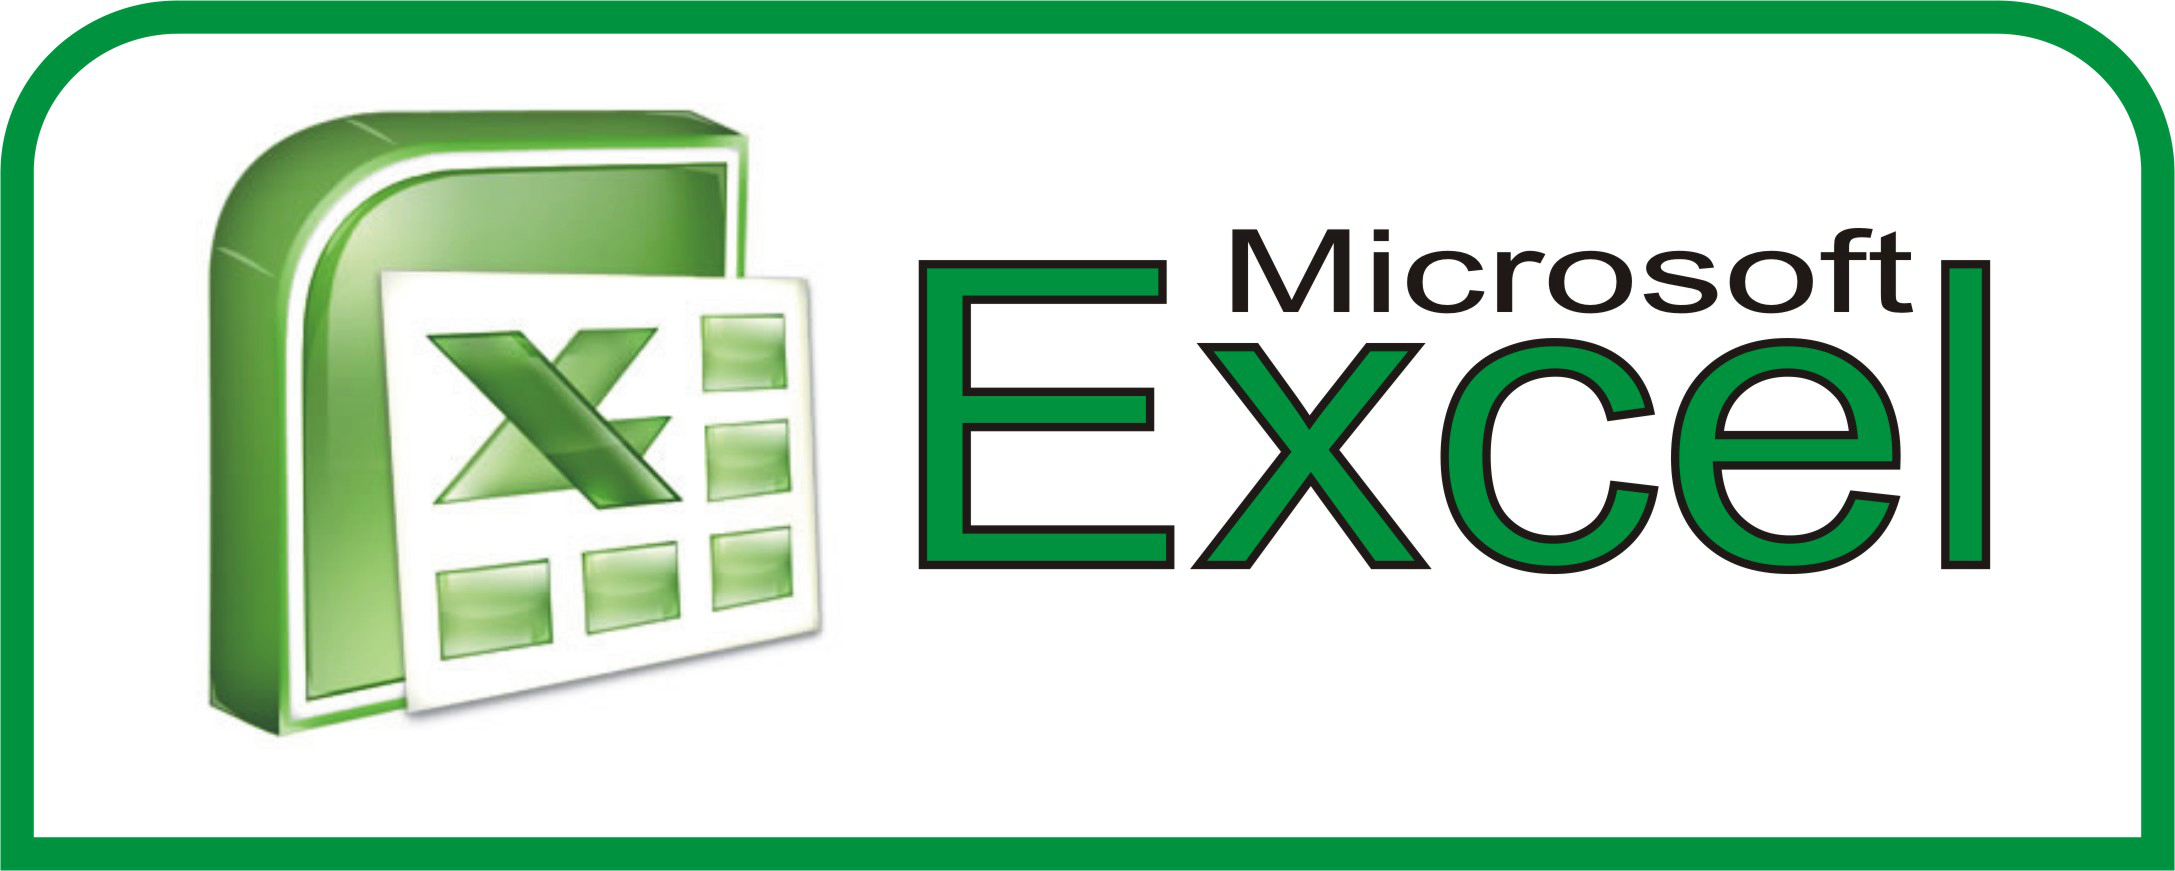 Ediblewildsus  Marvellous  Excel Shortcuts You Probably Didnt Know About  Techdissected With Foxy Freeze Excel Row Besides Excel Age Formula Furthermore Maximum Rows In Excel With Amazing What Is A Cell In Excel Also Excel Csv In Addition Excel Remove Hyperlink And Multiply Function In Excel As Well As Add A Drop Down List In Excel Additionally Percentage Change In Excel From Techdissectedcom With Ediblewildsus  Foxy  Excel Shortcuts You Probably Didnt Know About  Techdissected With Amazing Freeze Excel Row Besides Excel Age Formula Furthermore Maximum Rows In Excel And Marvellous What Is A Cell In Excel Also Excel Csv In Addition Excel Remove Hyperlink From Techdissectedcom